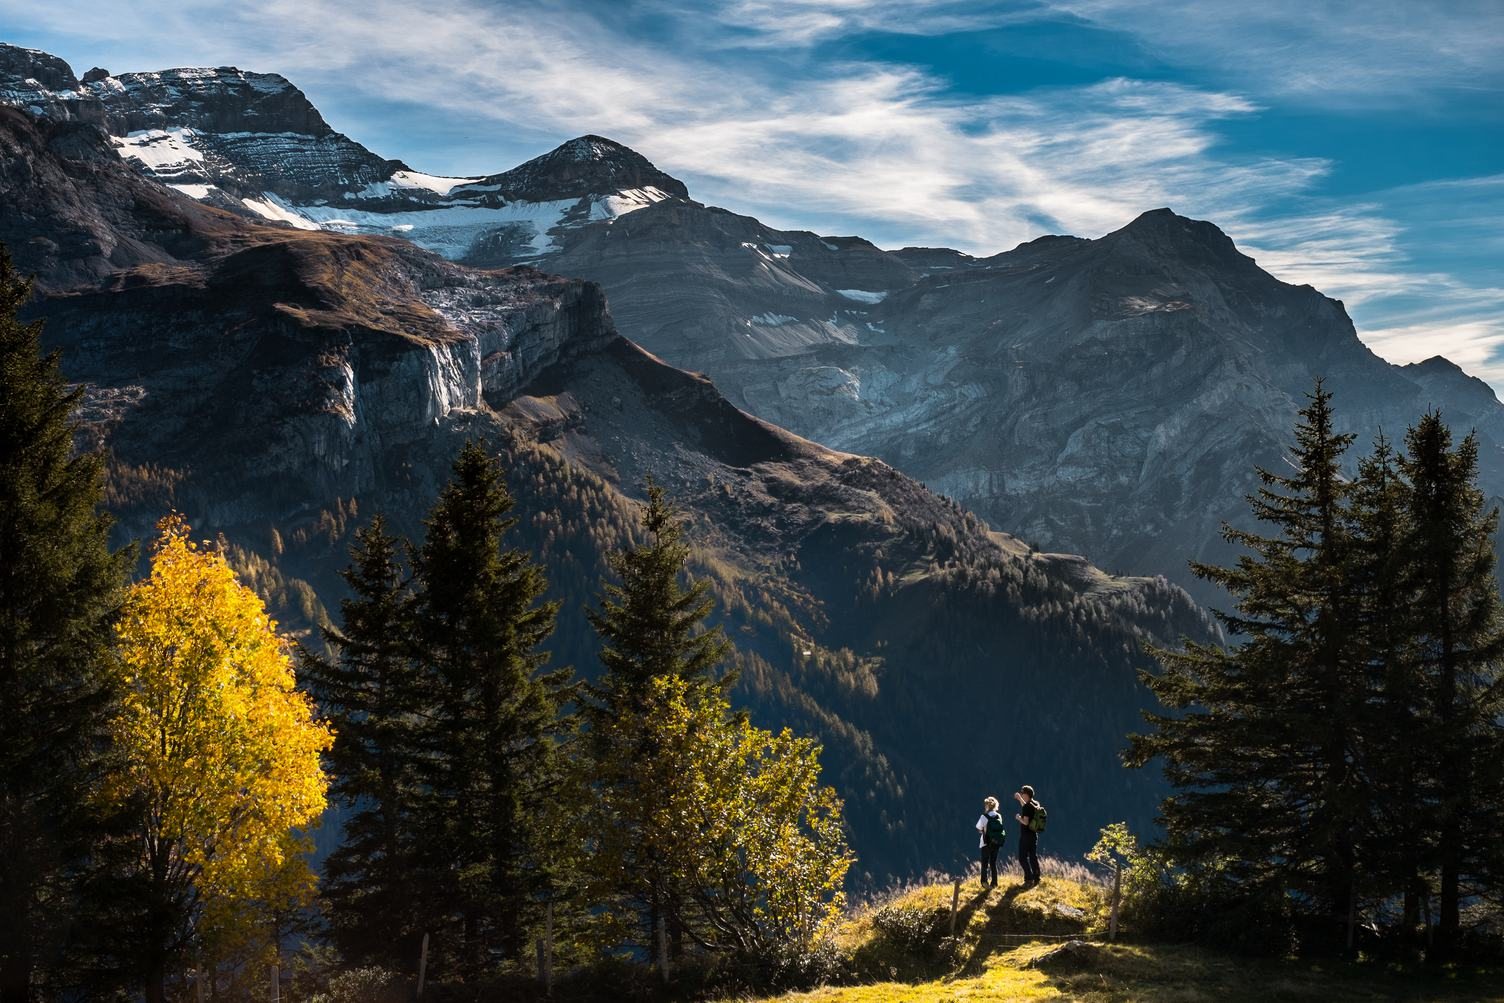 People Looking at Mountain